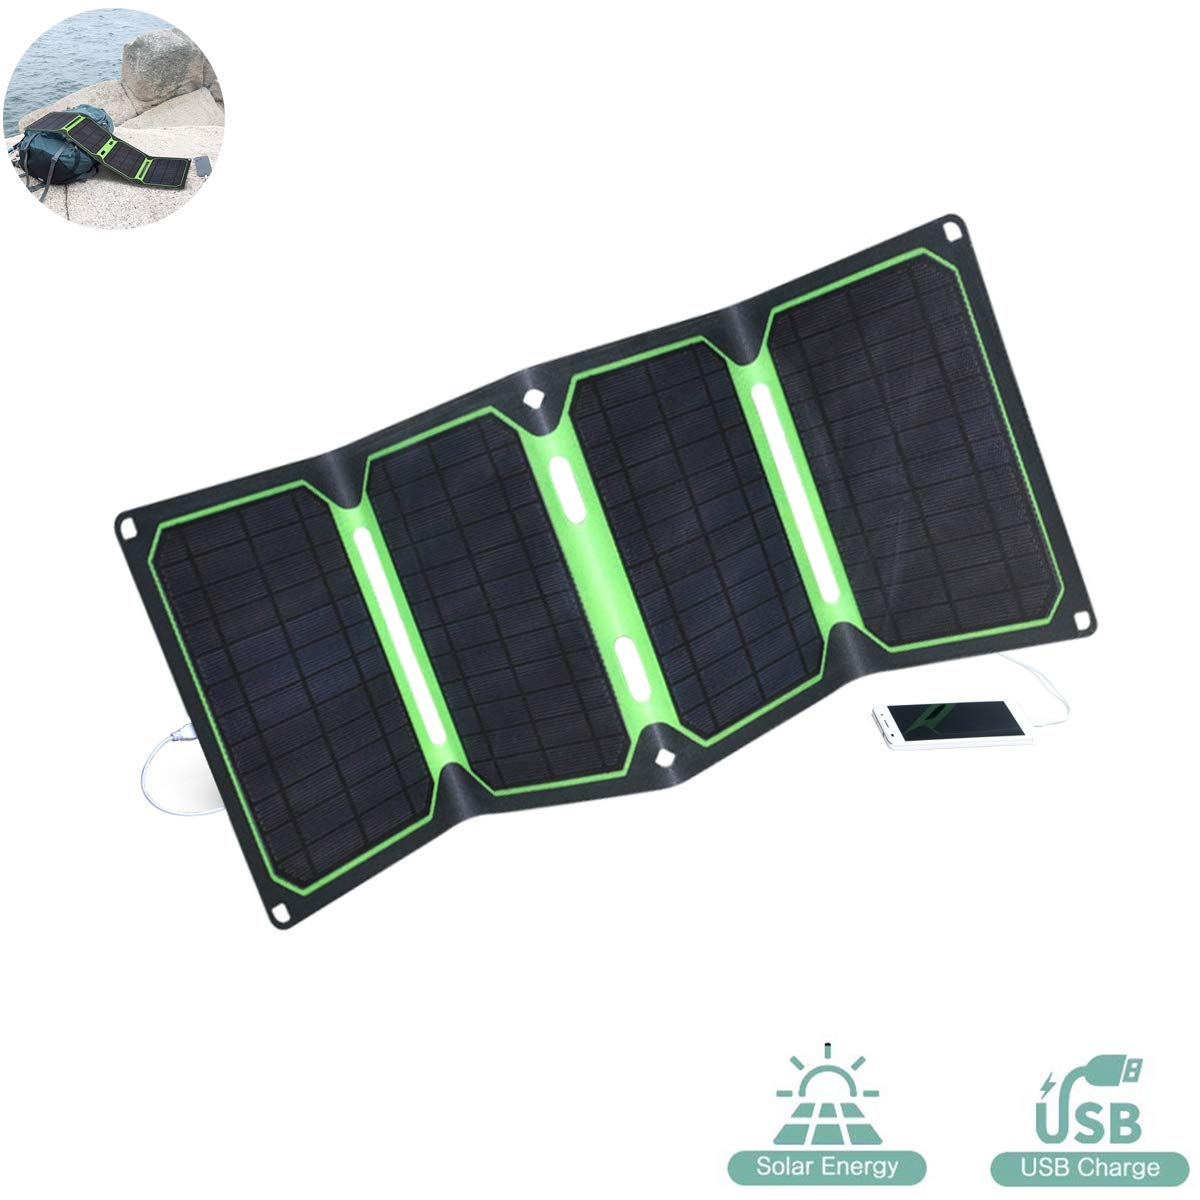 EFGS 4 Solar Panels 25W Foldable Portable Solar Charger with waterproofand Dual USB Ports for iPhone, Huawei, Samsung and More